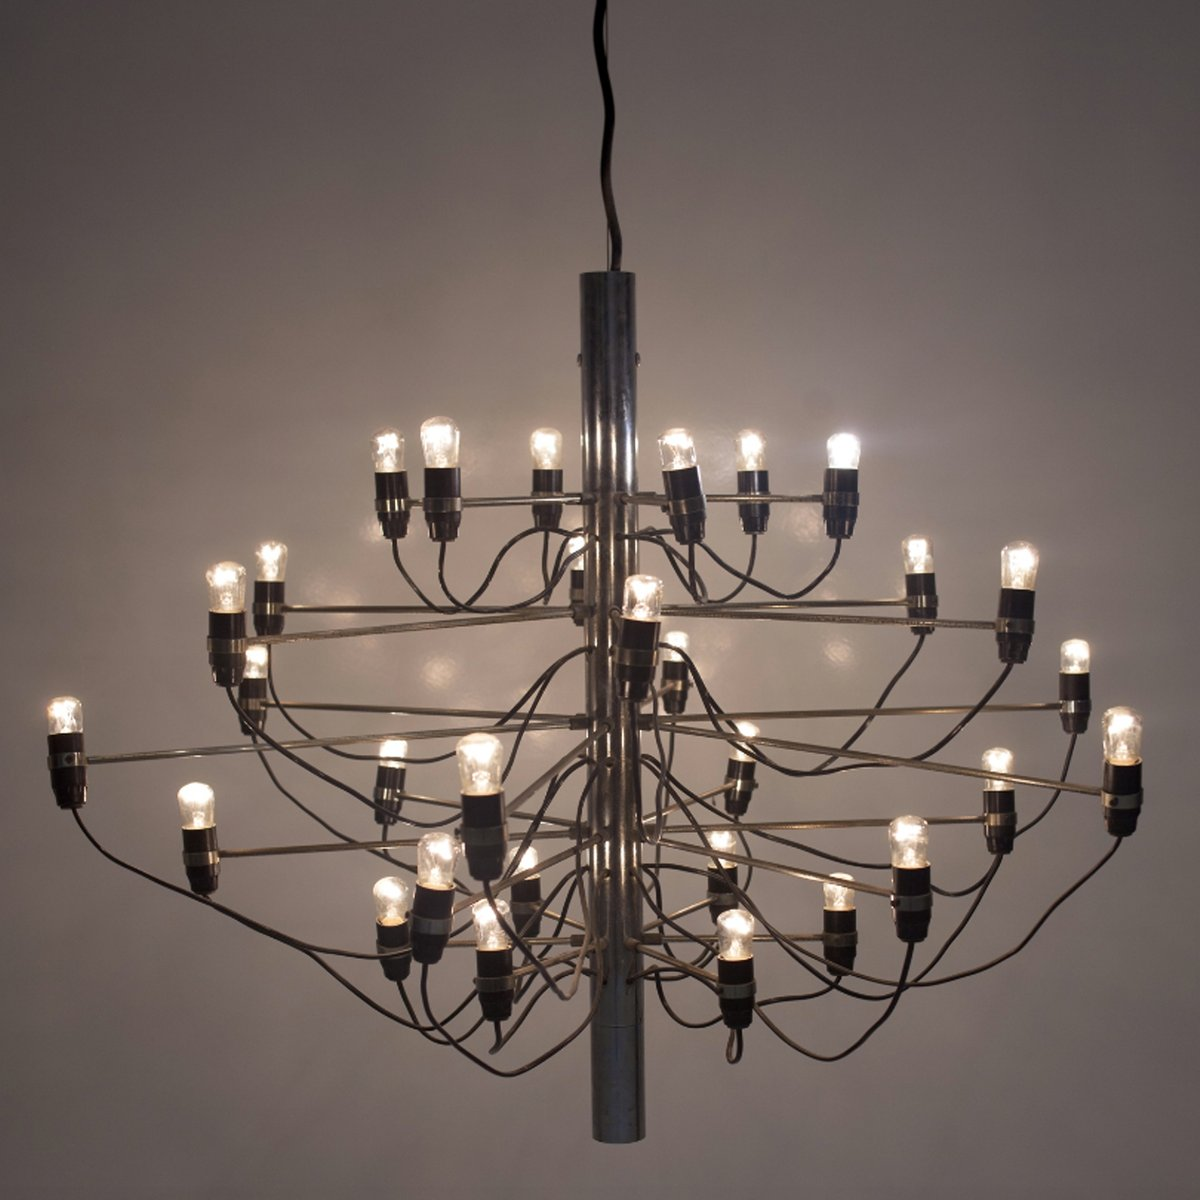 Model 209730 chandelier by gino sarfatti for arteluce 1958 for model 209730 chandelier by gino sarfatti for arteluce 1958 aloadofball